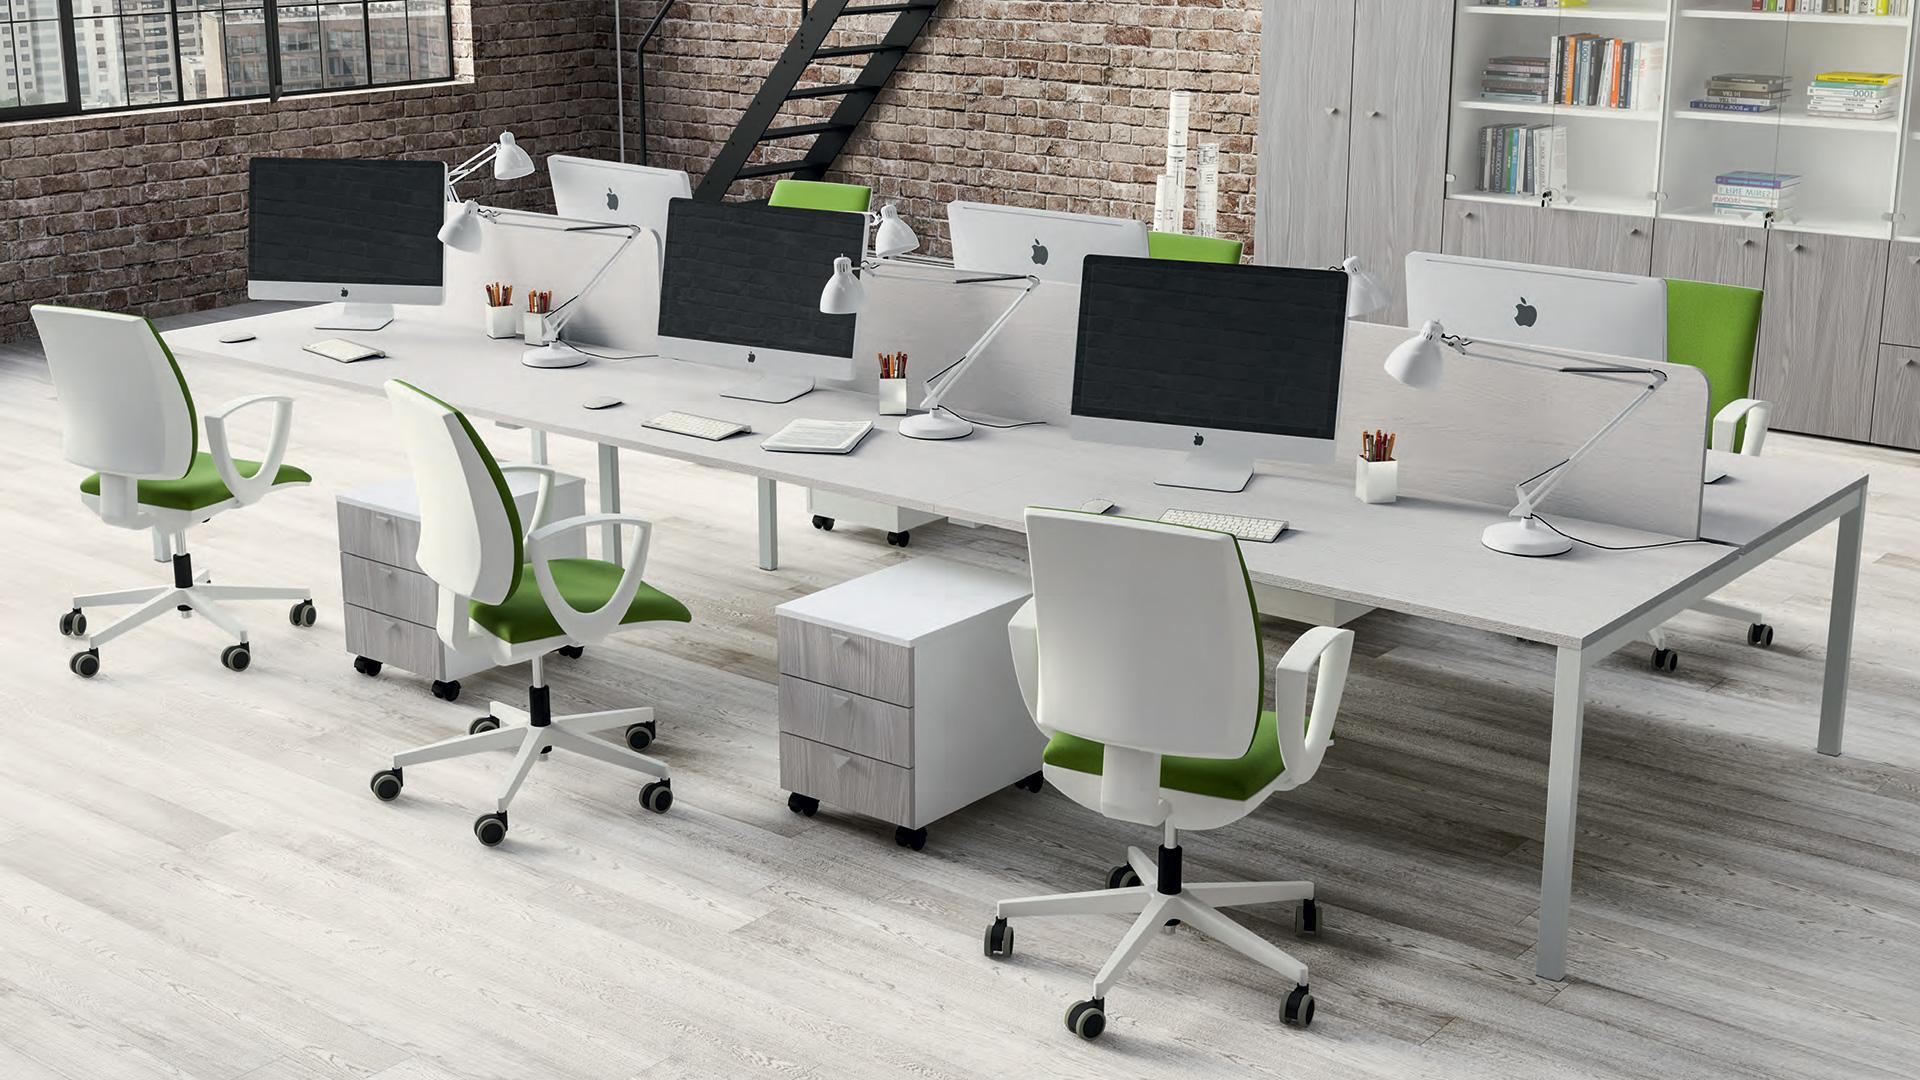 office furniture ideas. Great Office Furniture. Img Furniture S Ideas D